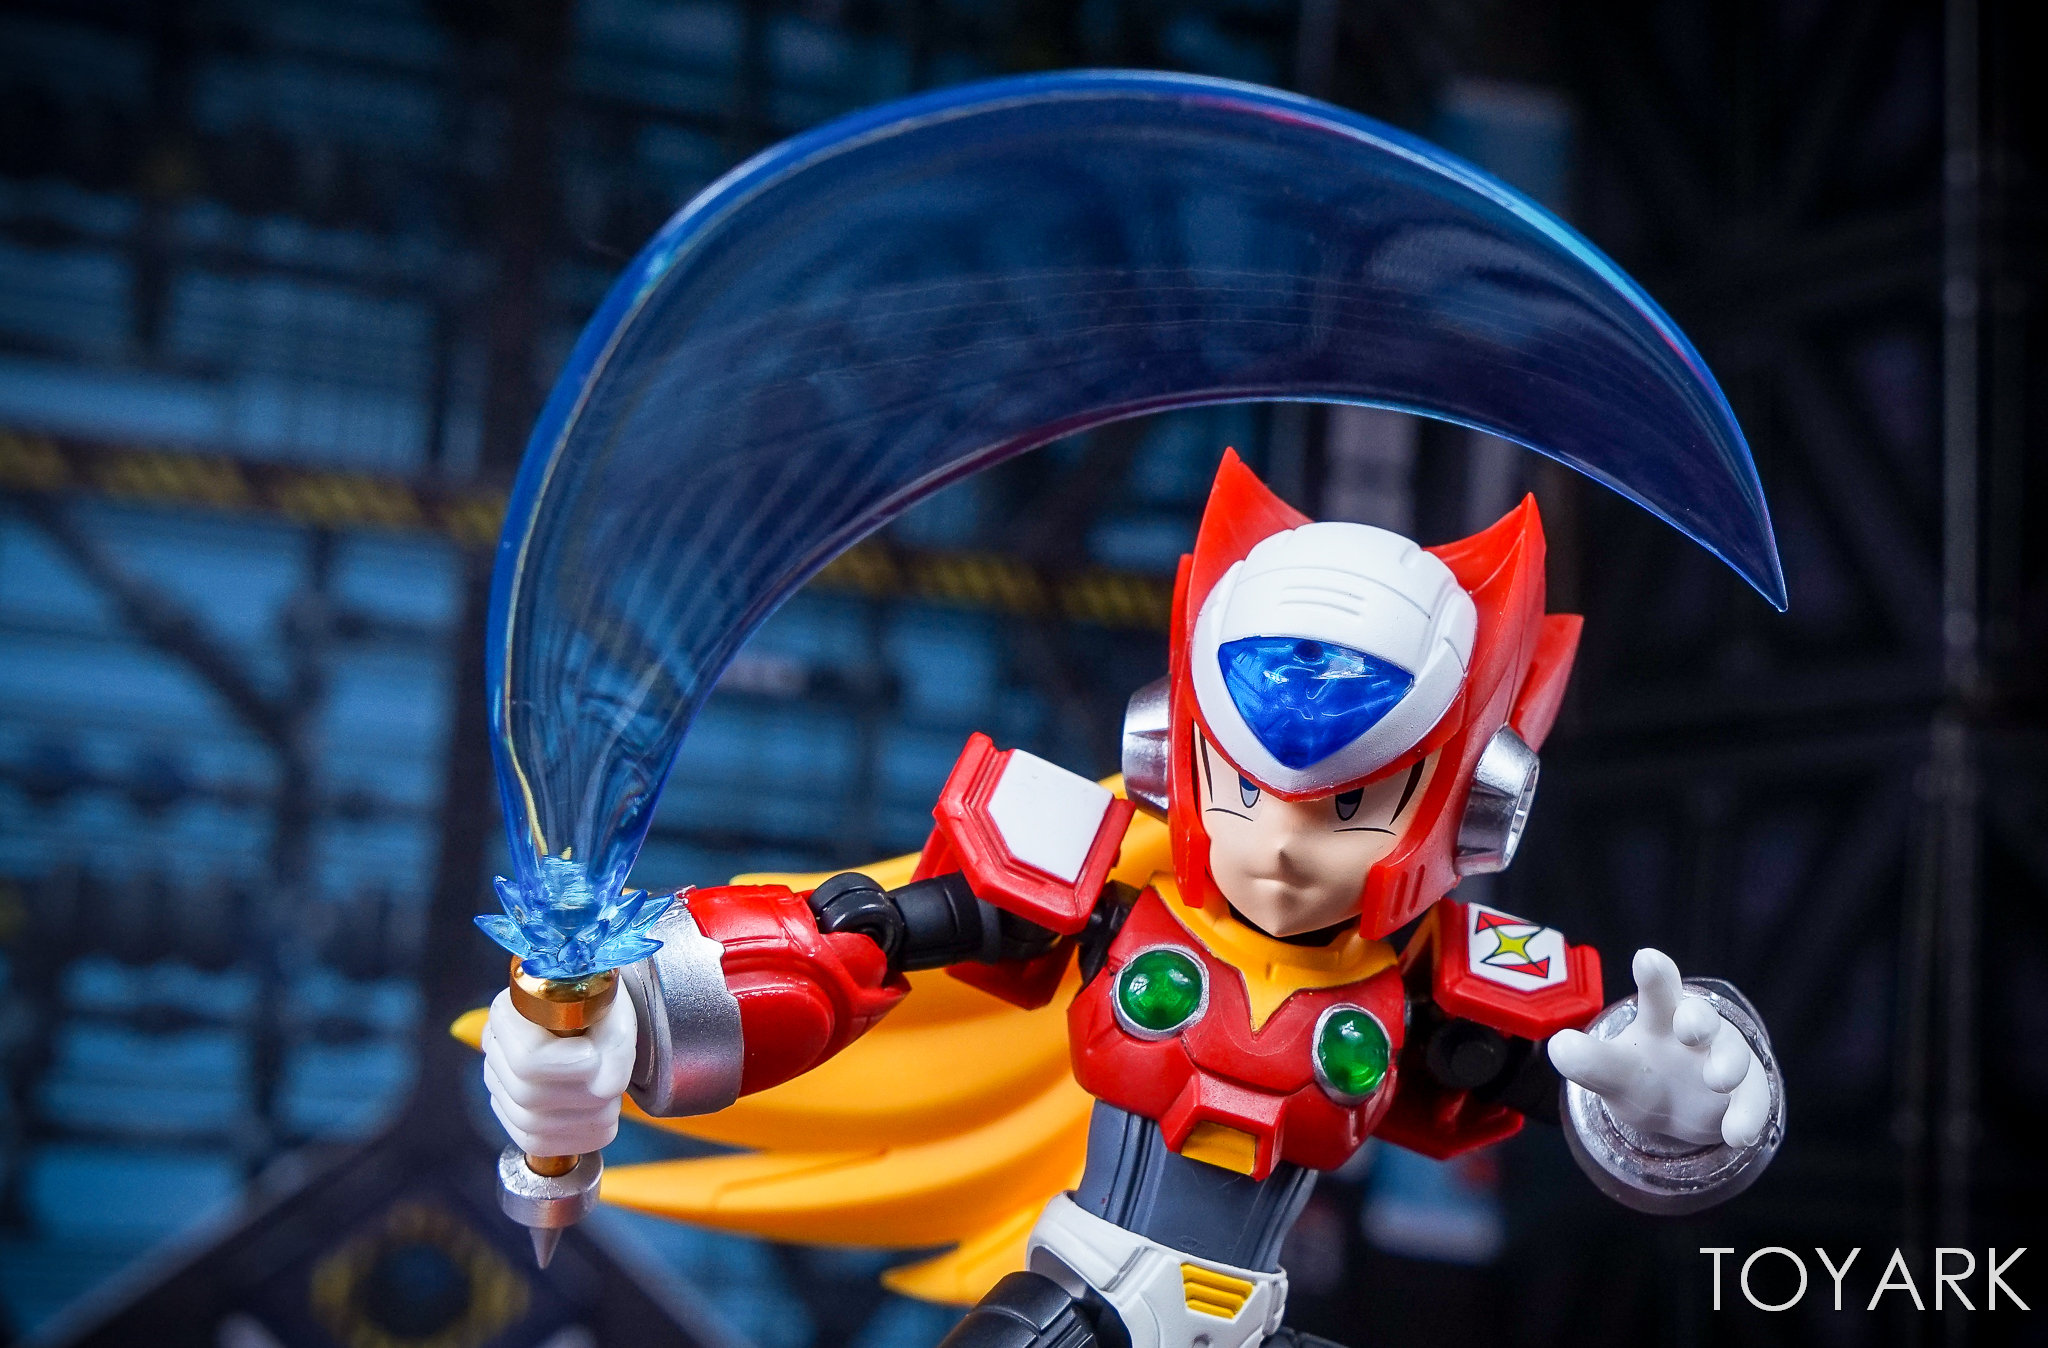 http://news.toyark.com/wp-content/uploads/sites/4/2017/11/Mega-Man-X-NX-Edge-Style-034.jpg